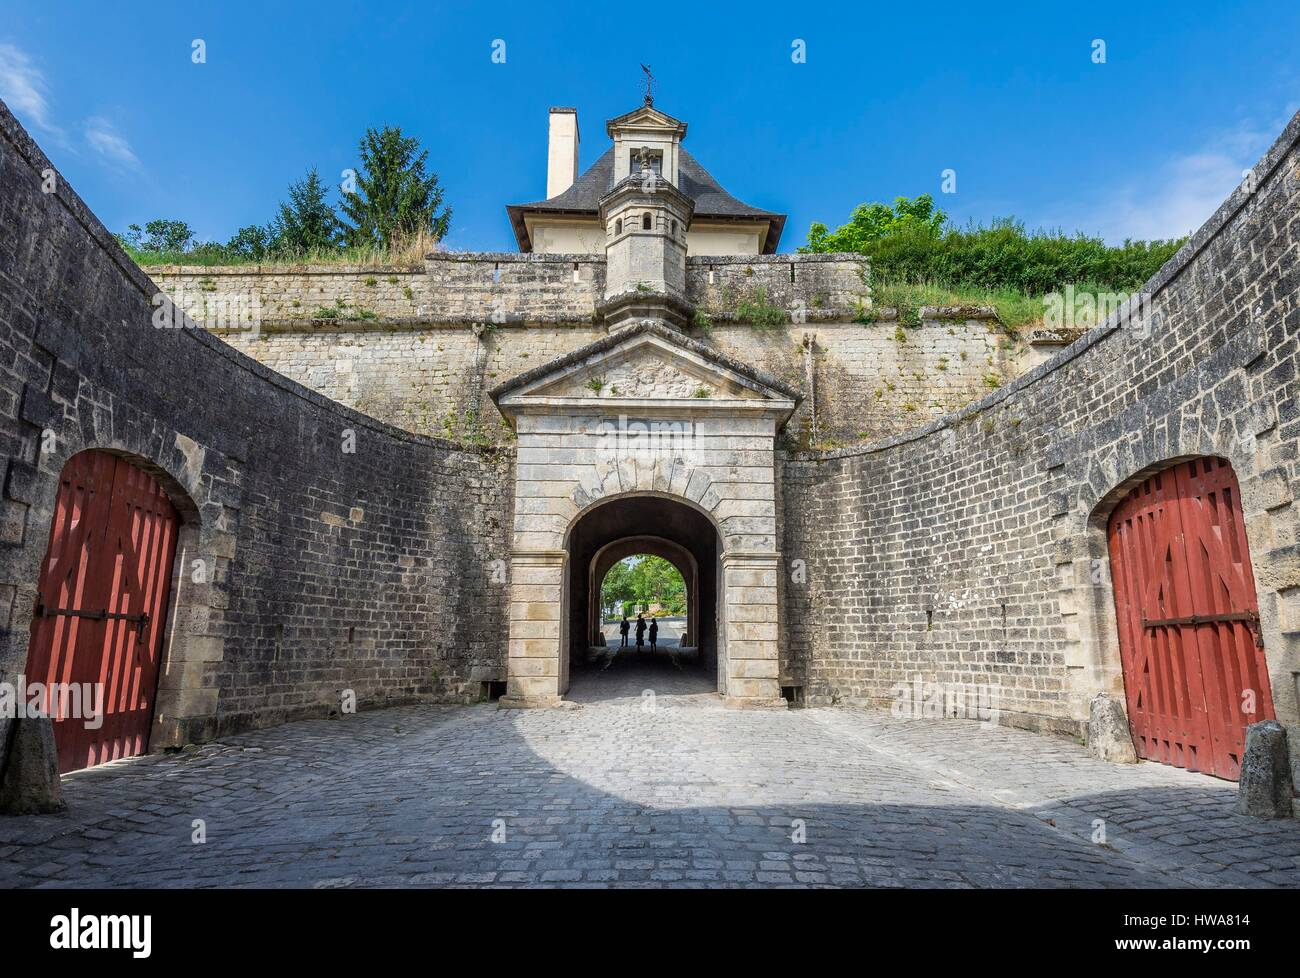 France, Gironde, stage on the way of Santiago de Compostela, the Citadel, Fortifications of Vauban, UNESCO World - Stock Image